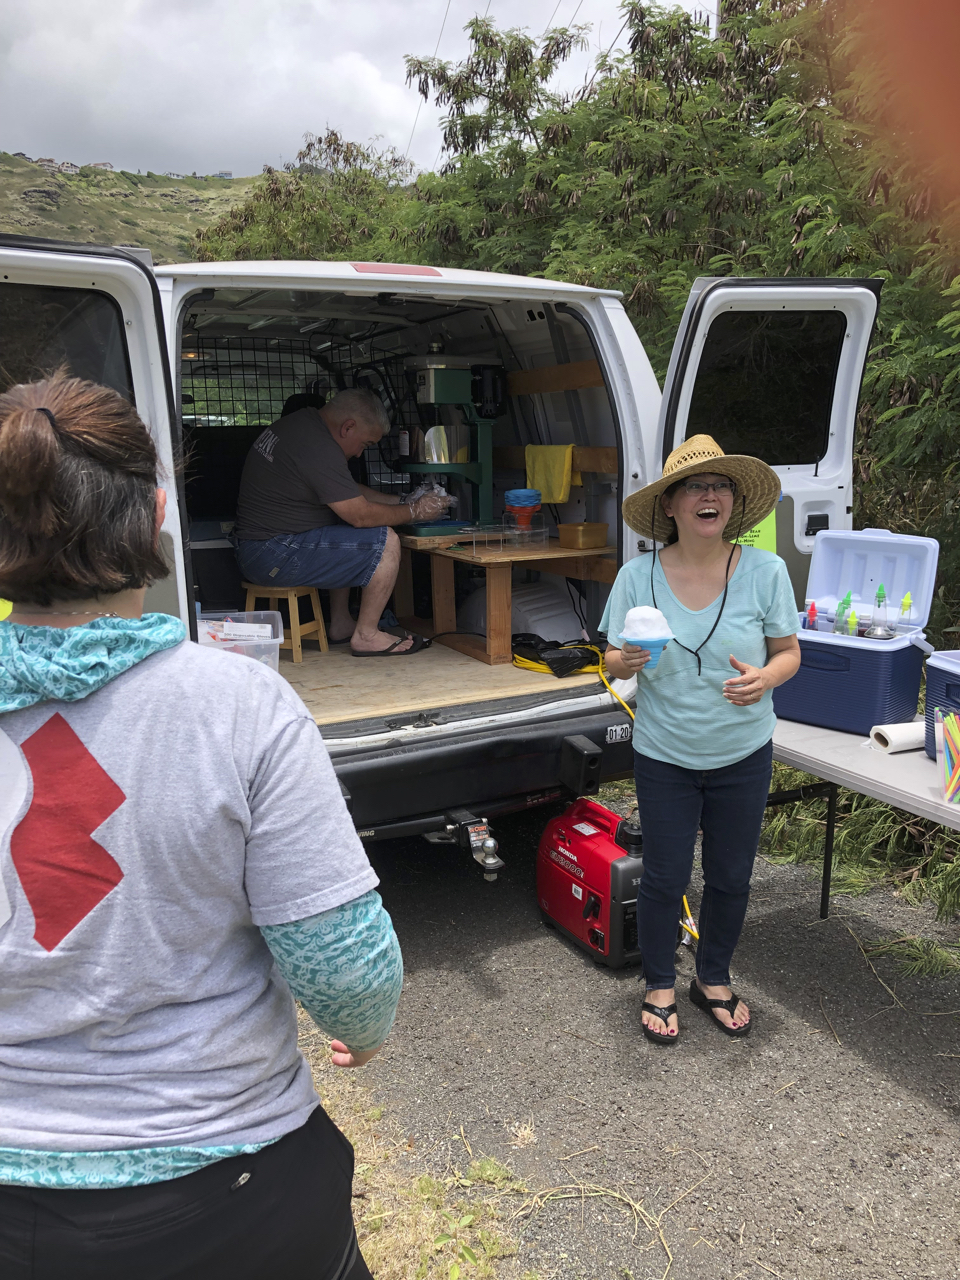 Kamilonui-Mariner's Cove Memorial Day Weekend Wildfire Mitigation Project_2019_5_25_Credit Aloha Aina O Kamilo Nui_12.jpeg